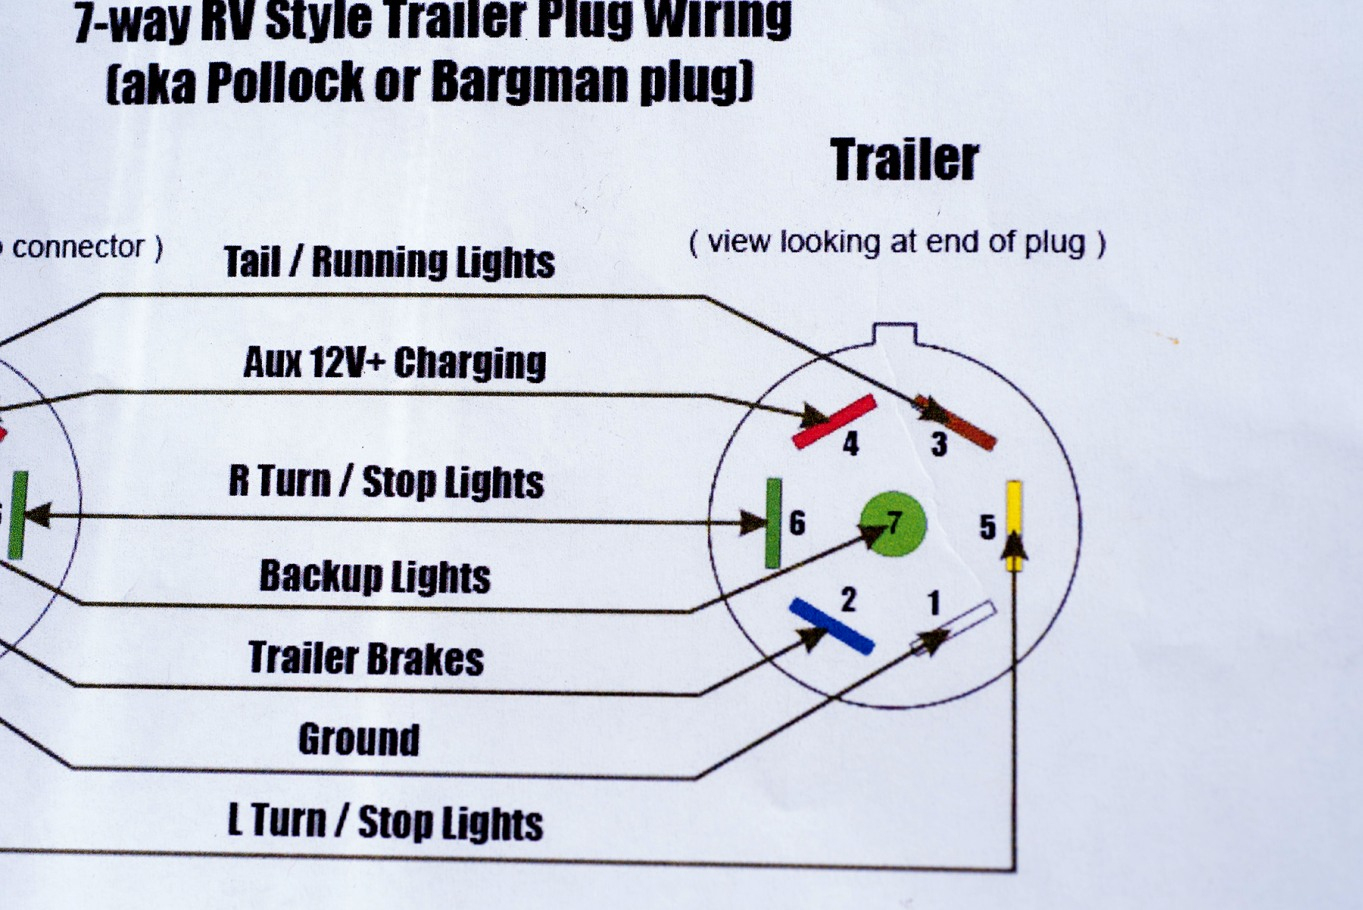 7 Round Trailer Wiring Diagram - Wiring Diagrams Hubs - 7 Round Trailer Wiring Diagram